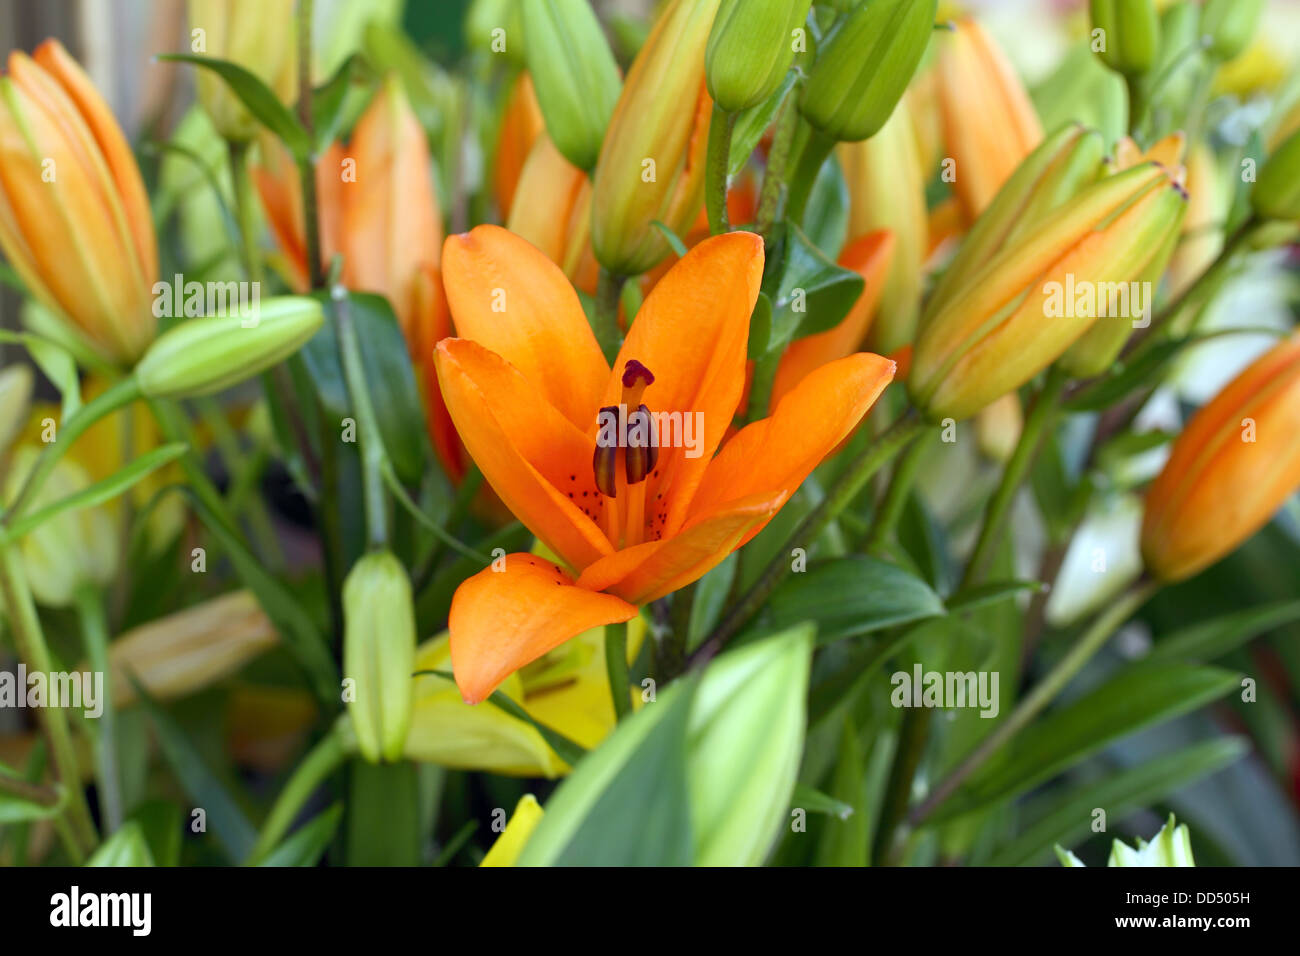 Orange lily flower buds stock photos orange lily flower buds stock flower of a lily fritillaria imperialis close upwith the buds in the background izmirmasajfo